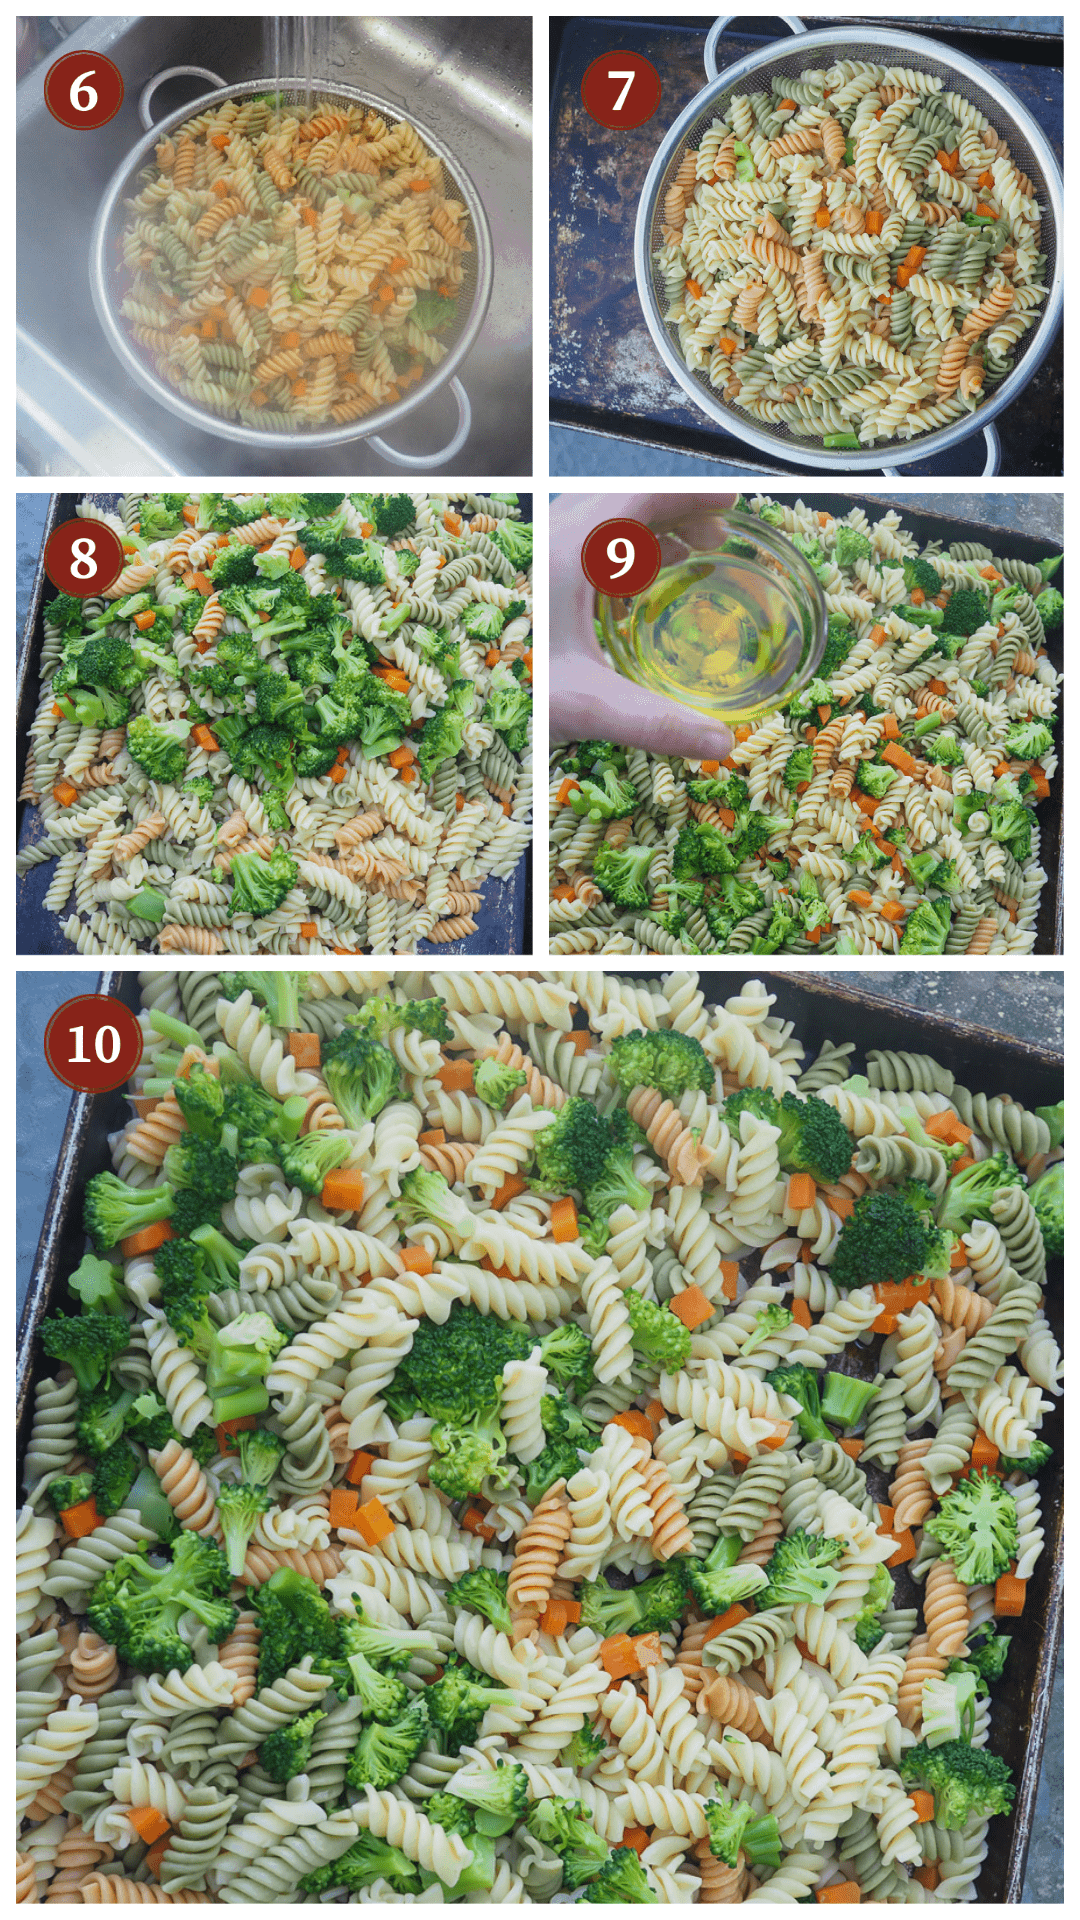 A collage of images showing hot to make pasta salad, steps 6 - 10.